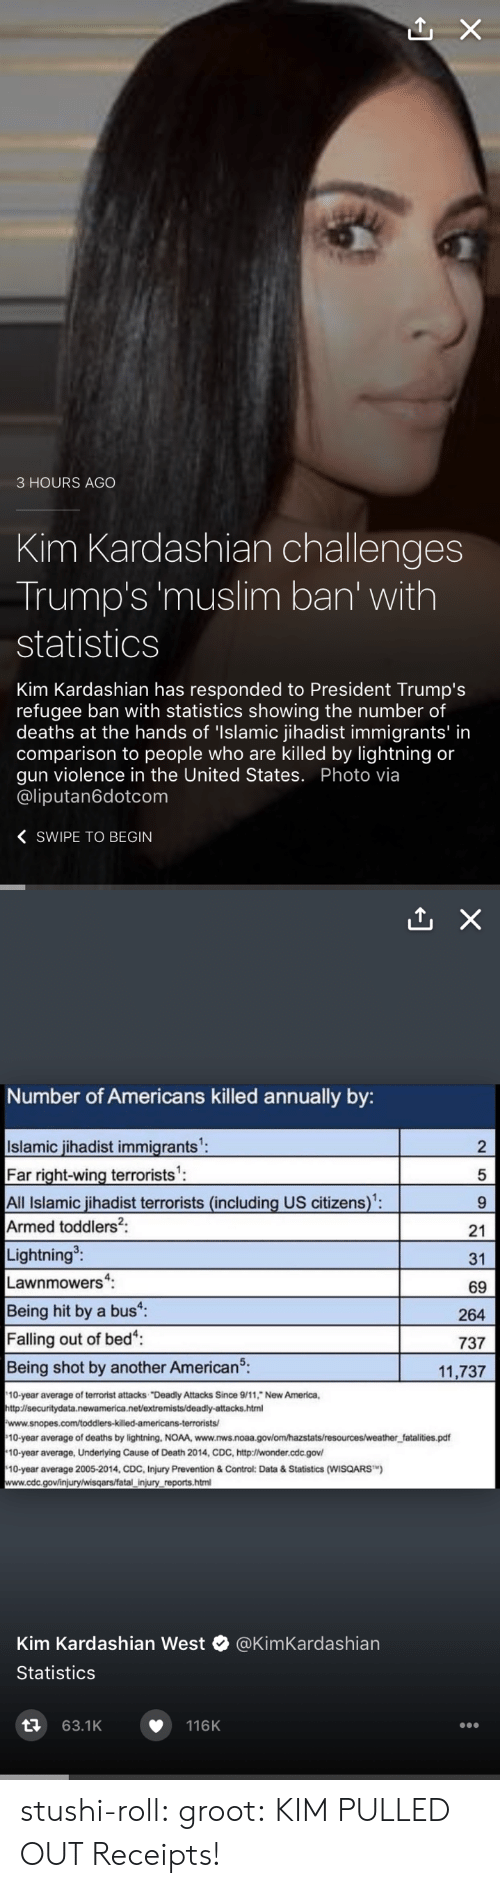 """Muslim Ban: 3 HOURS AGO  Kim Kardashian challenges  Trump's 'muslim ban' with  statistics  Kim Kardashian has responded to President Trump's  refugee ban with statistics showing the number of  deaths at the hands of 'Islamic jihadist immigrants' in  comparison to people who are killed by lightning or  gun violence in the United States. Photo via  @liputan6dotcom  〈 SWIPE TO BEGIN   Number of Americans killed annually by:  Islamic jihadist immigrants  Far right-wing terrorists'  All Islamic jihadist terrorists (including US citizens):  Armed toddlers2:  Lightning  Lawnmowers:  Being hit by a bus  Falling out of bed  Being shot by another American5.  2  5  21  31  69  264  737  11,737  10-year average of terrorist attacks """"Deadly Attacks Since 9/11, New America,  http:l/securitydata.newamerica.net/extremists/deadly-attacks.html  10-year average of deaths by lightning, NOAA, www.nws.noaa.govlom/hazstats/resources/weather fatalities.pdf  10-year average, Underlying Cause of Death 2014, CDC, http:lwonder.cdc.gov  10-year average 2005-2014, CDC, Injury Prevention & Control: Data&Statistics (WISQARS)  www.cdc.gov/injury/wisqars/fatal injury reports.html  Kim Kardashian West @KimKardashian  Statistics  63.1K  116K stushi-roll:  groot: KIM PULLED OUT Receipts!"""